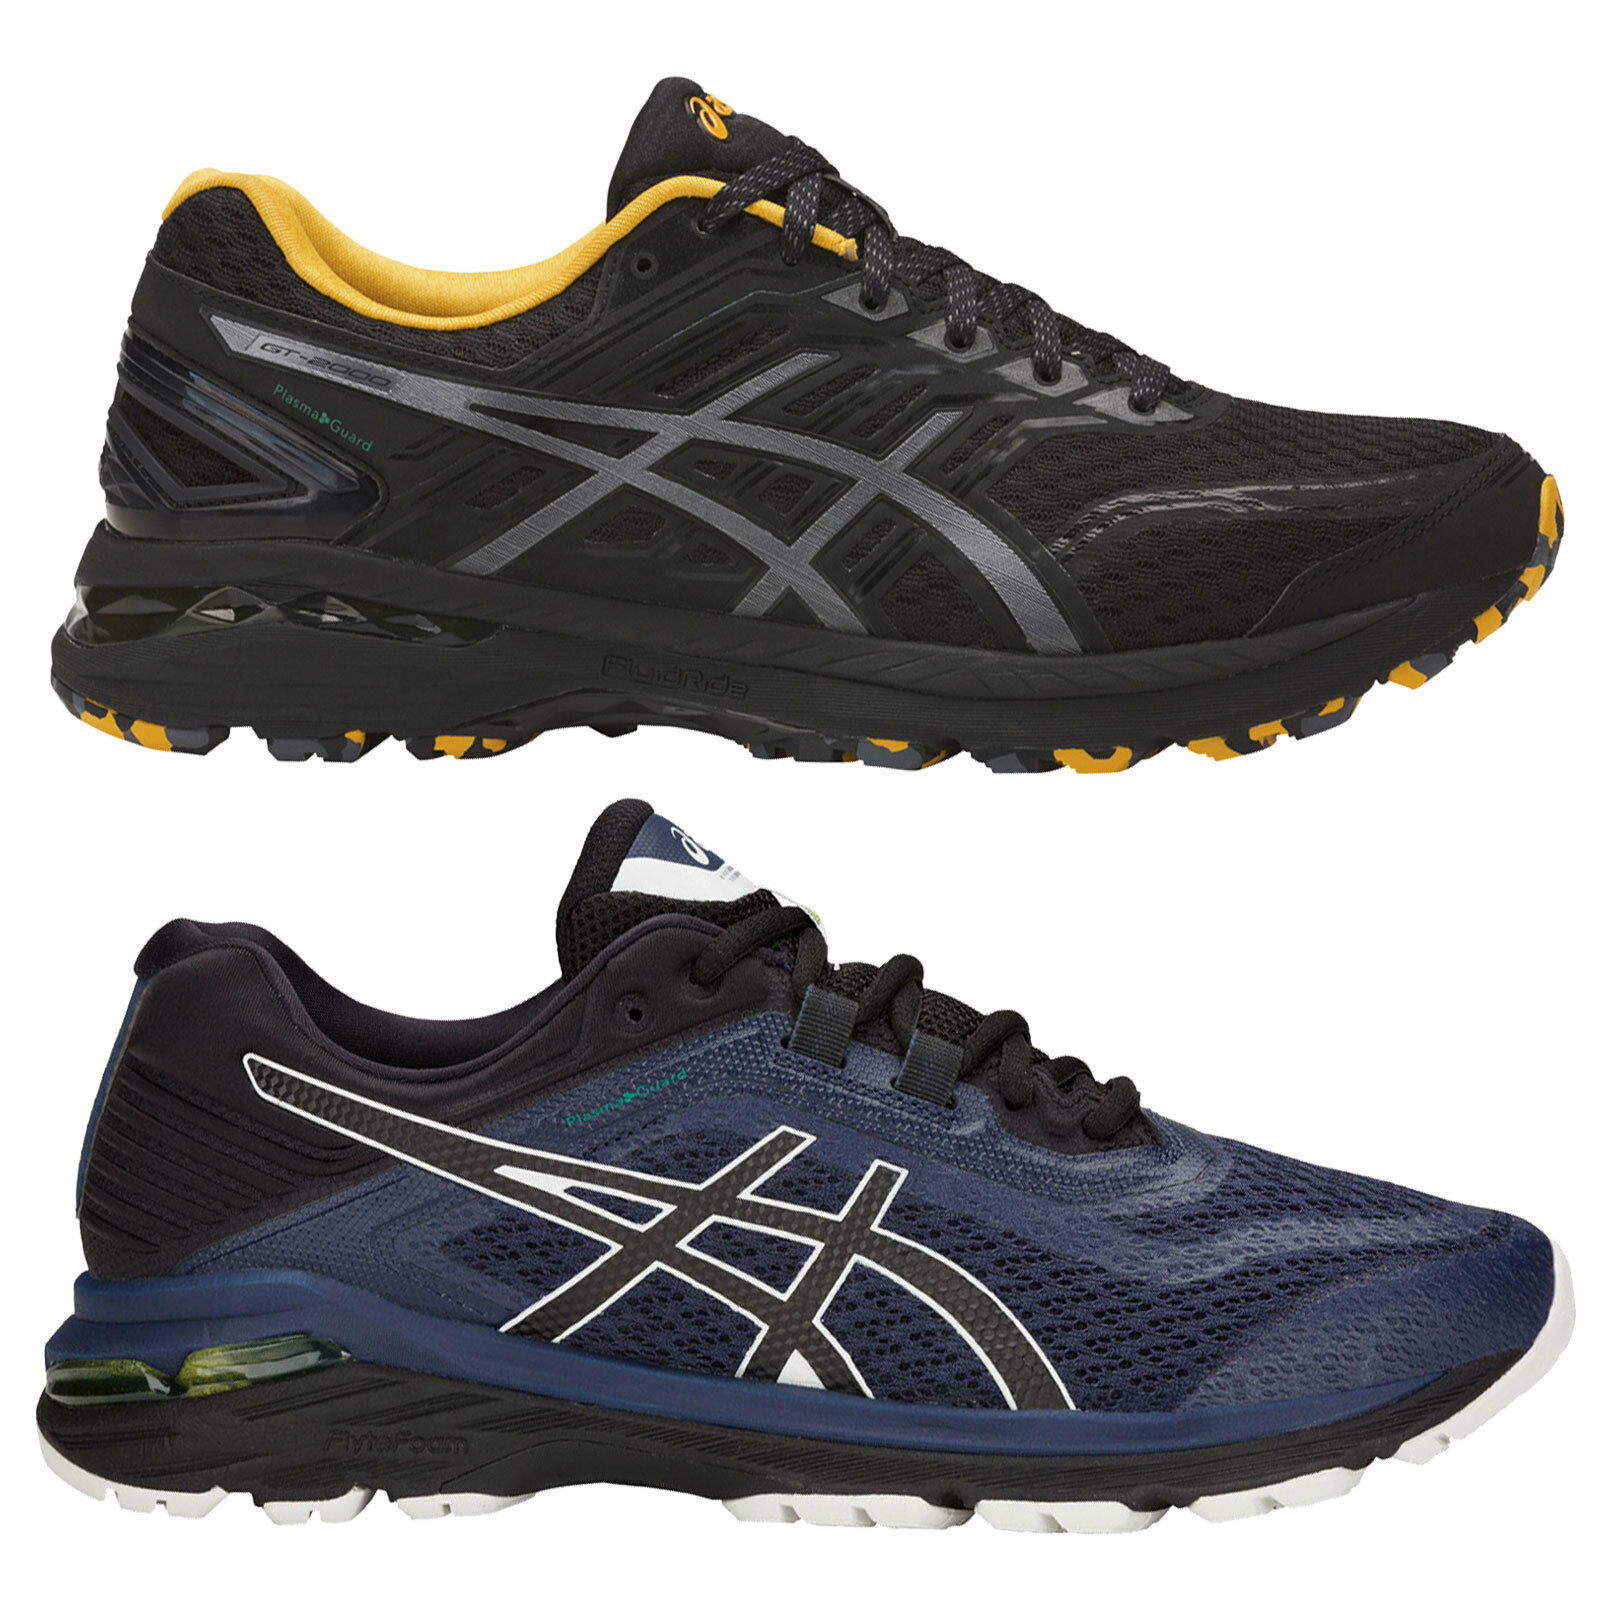 Asics performance gt-2000 Trail caballeros-zapatillas larga distancia de zapatos zapato deportivo